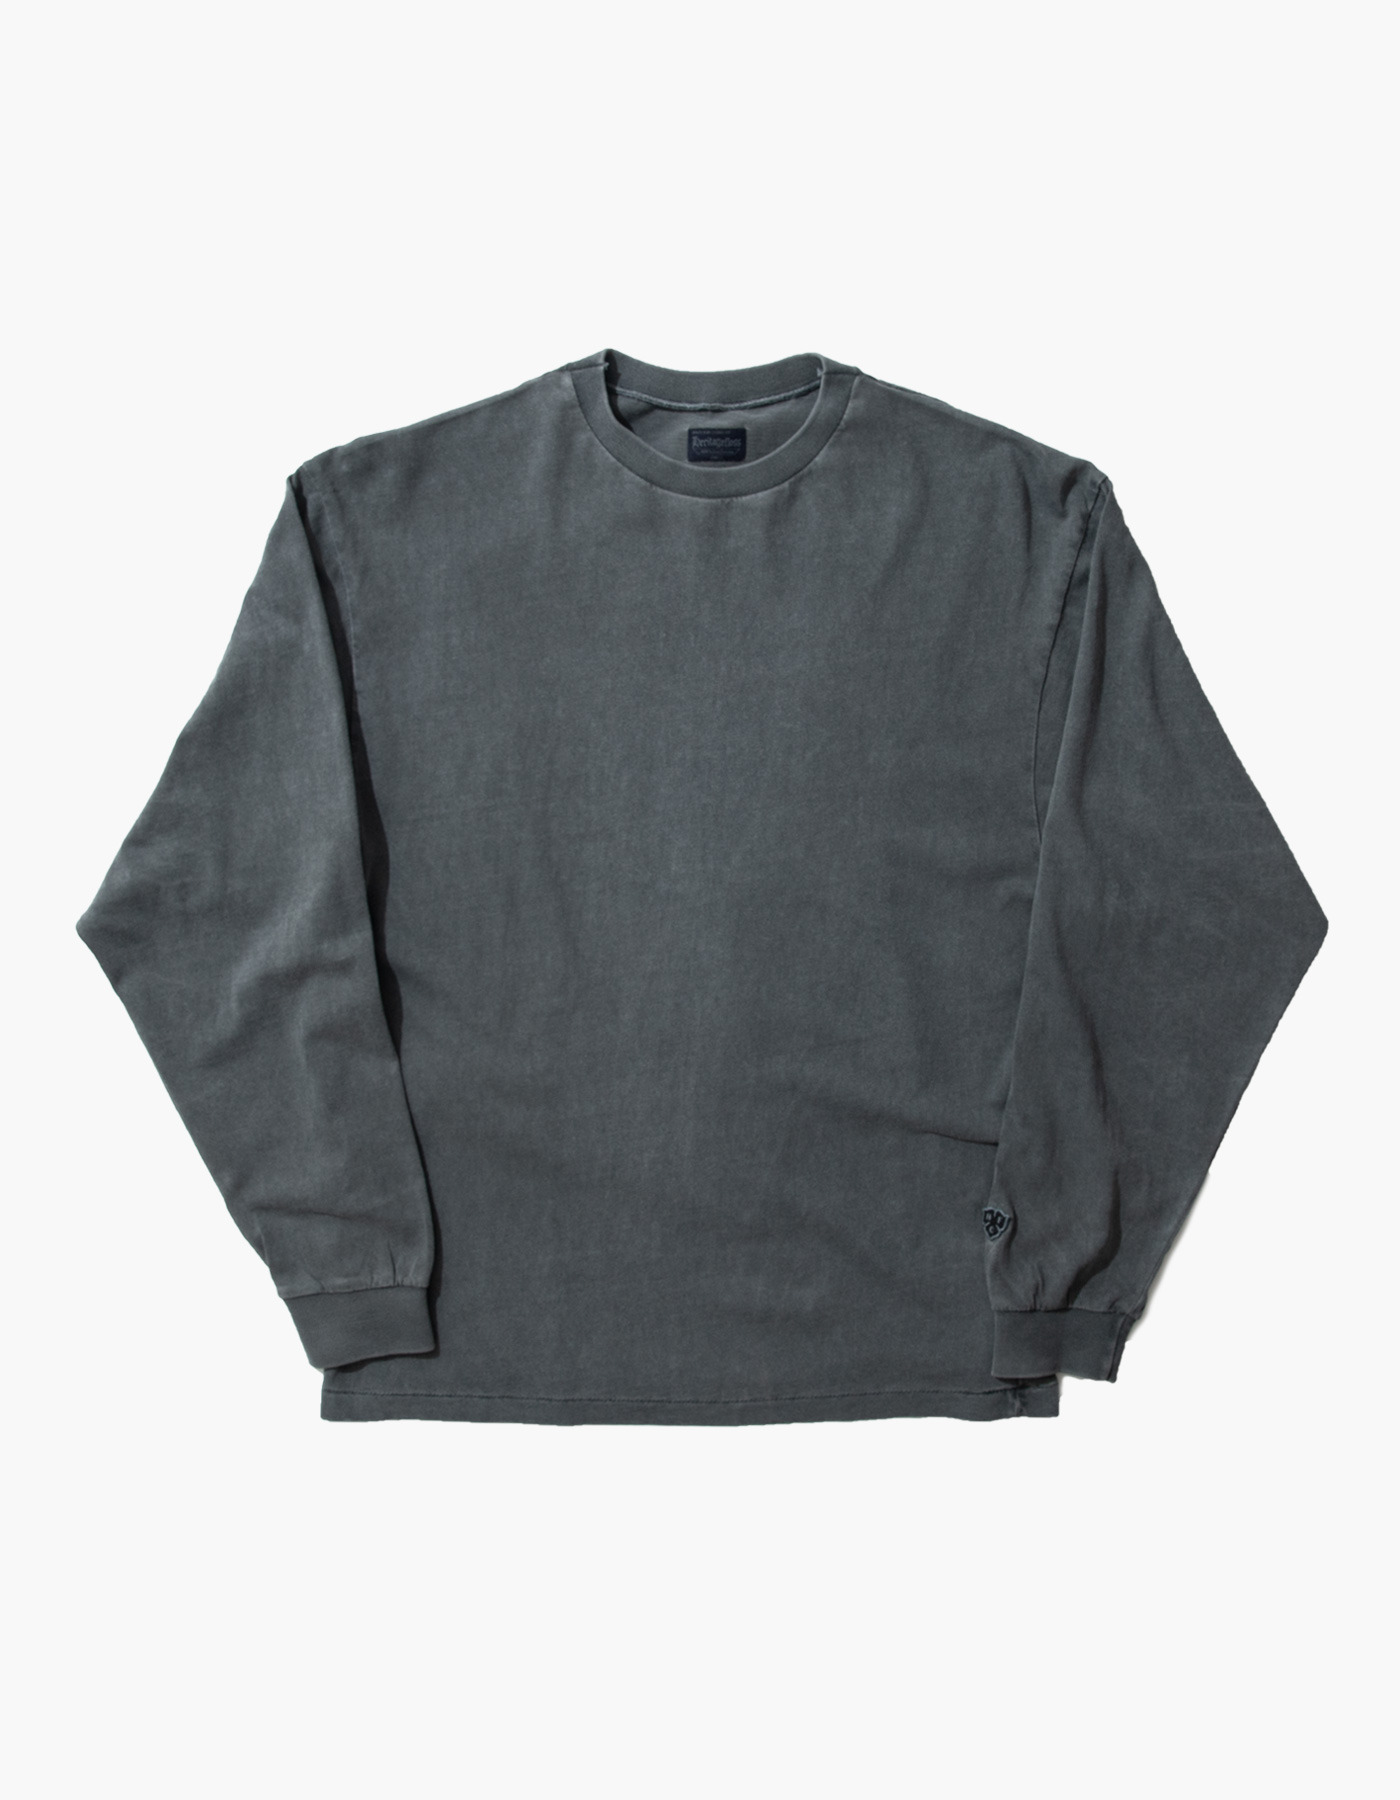 ACS COMPACT YARN LONG SLEEVE / CHARCOAL